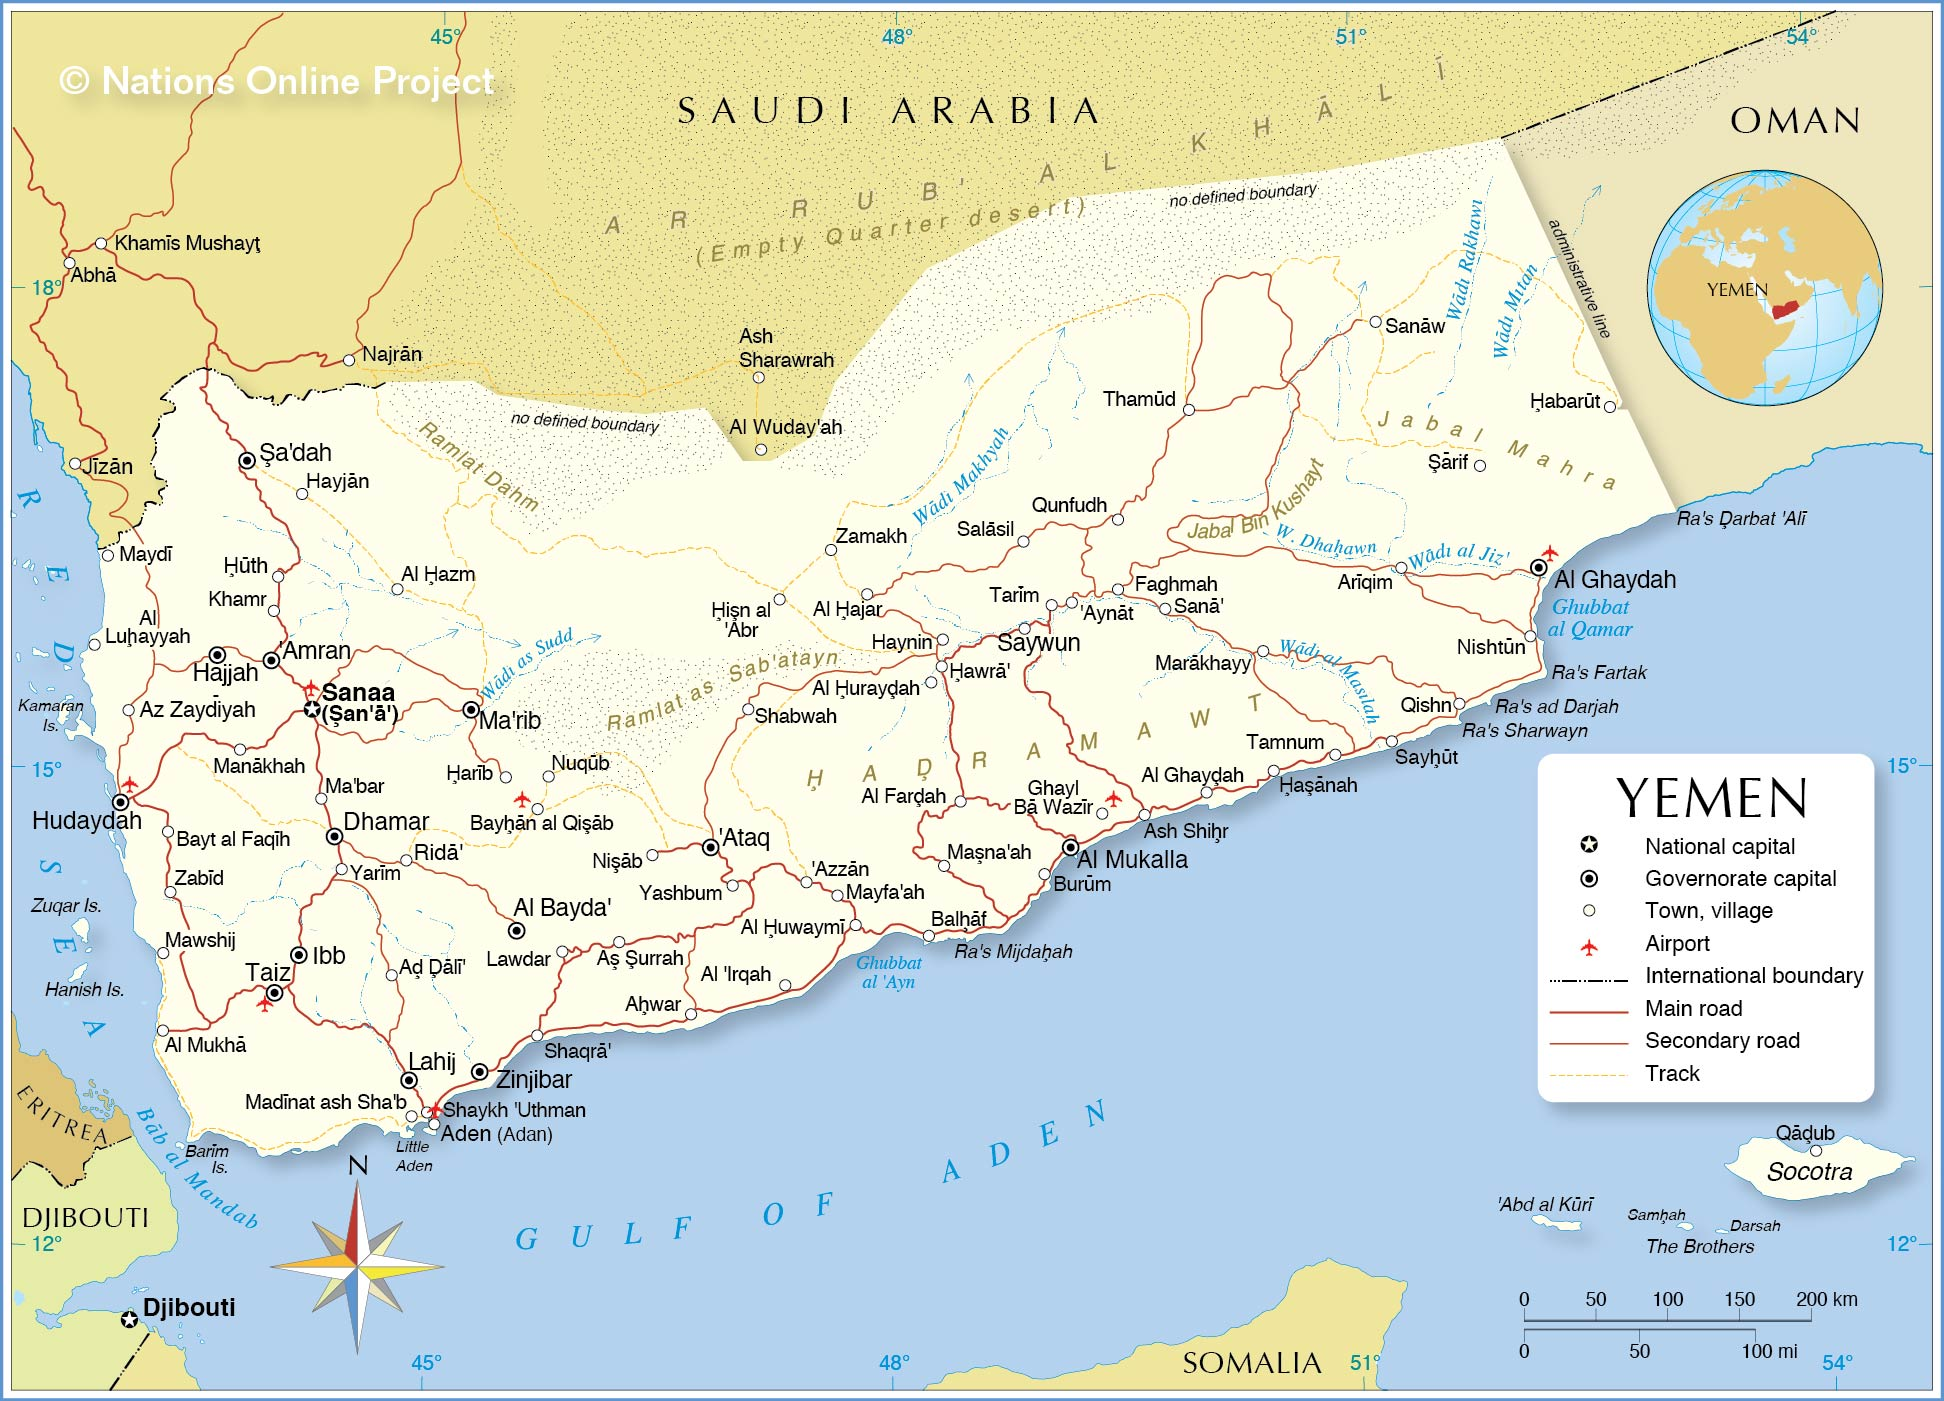 Political Map of Yemen - Nations Online Project